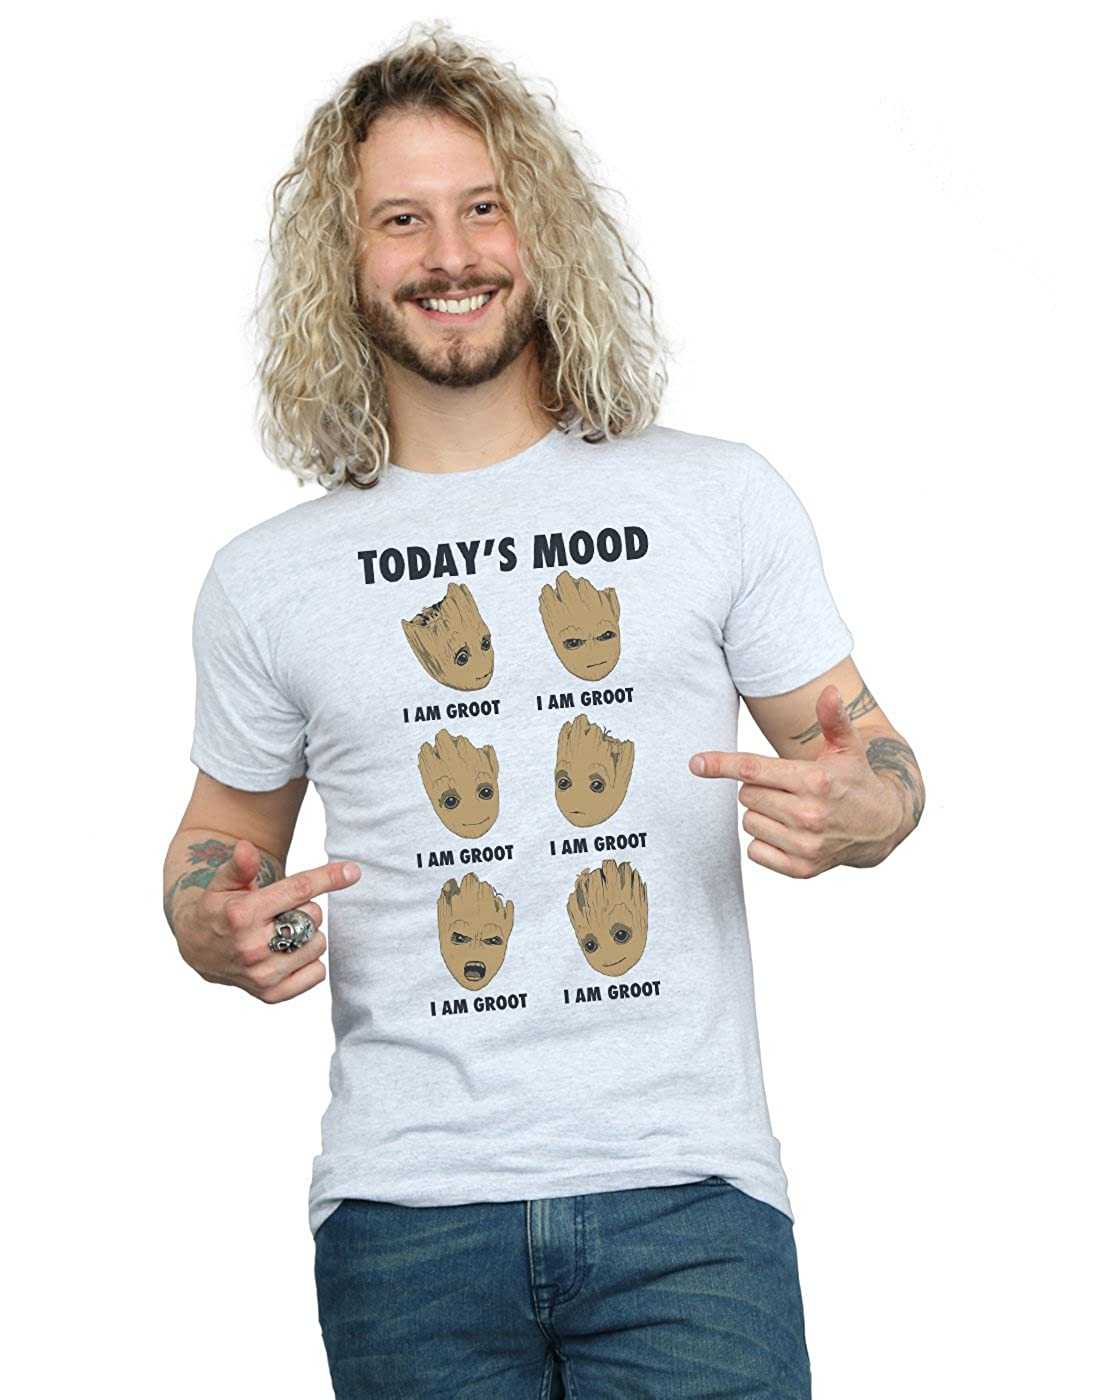 Marvel Homme Guardians of The Galaxy Groot Today's Mood T-Shirt Absolute Cult